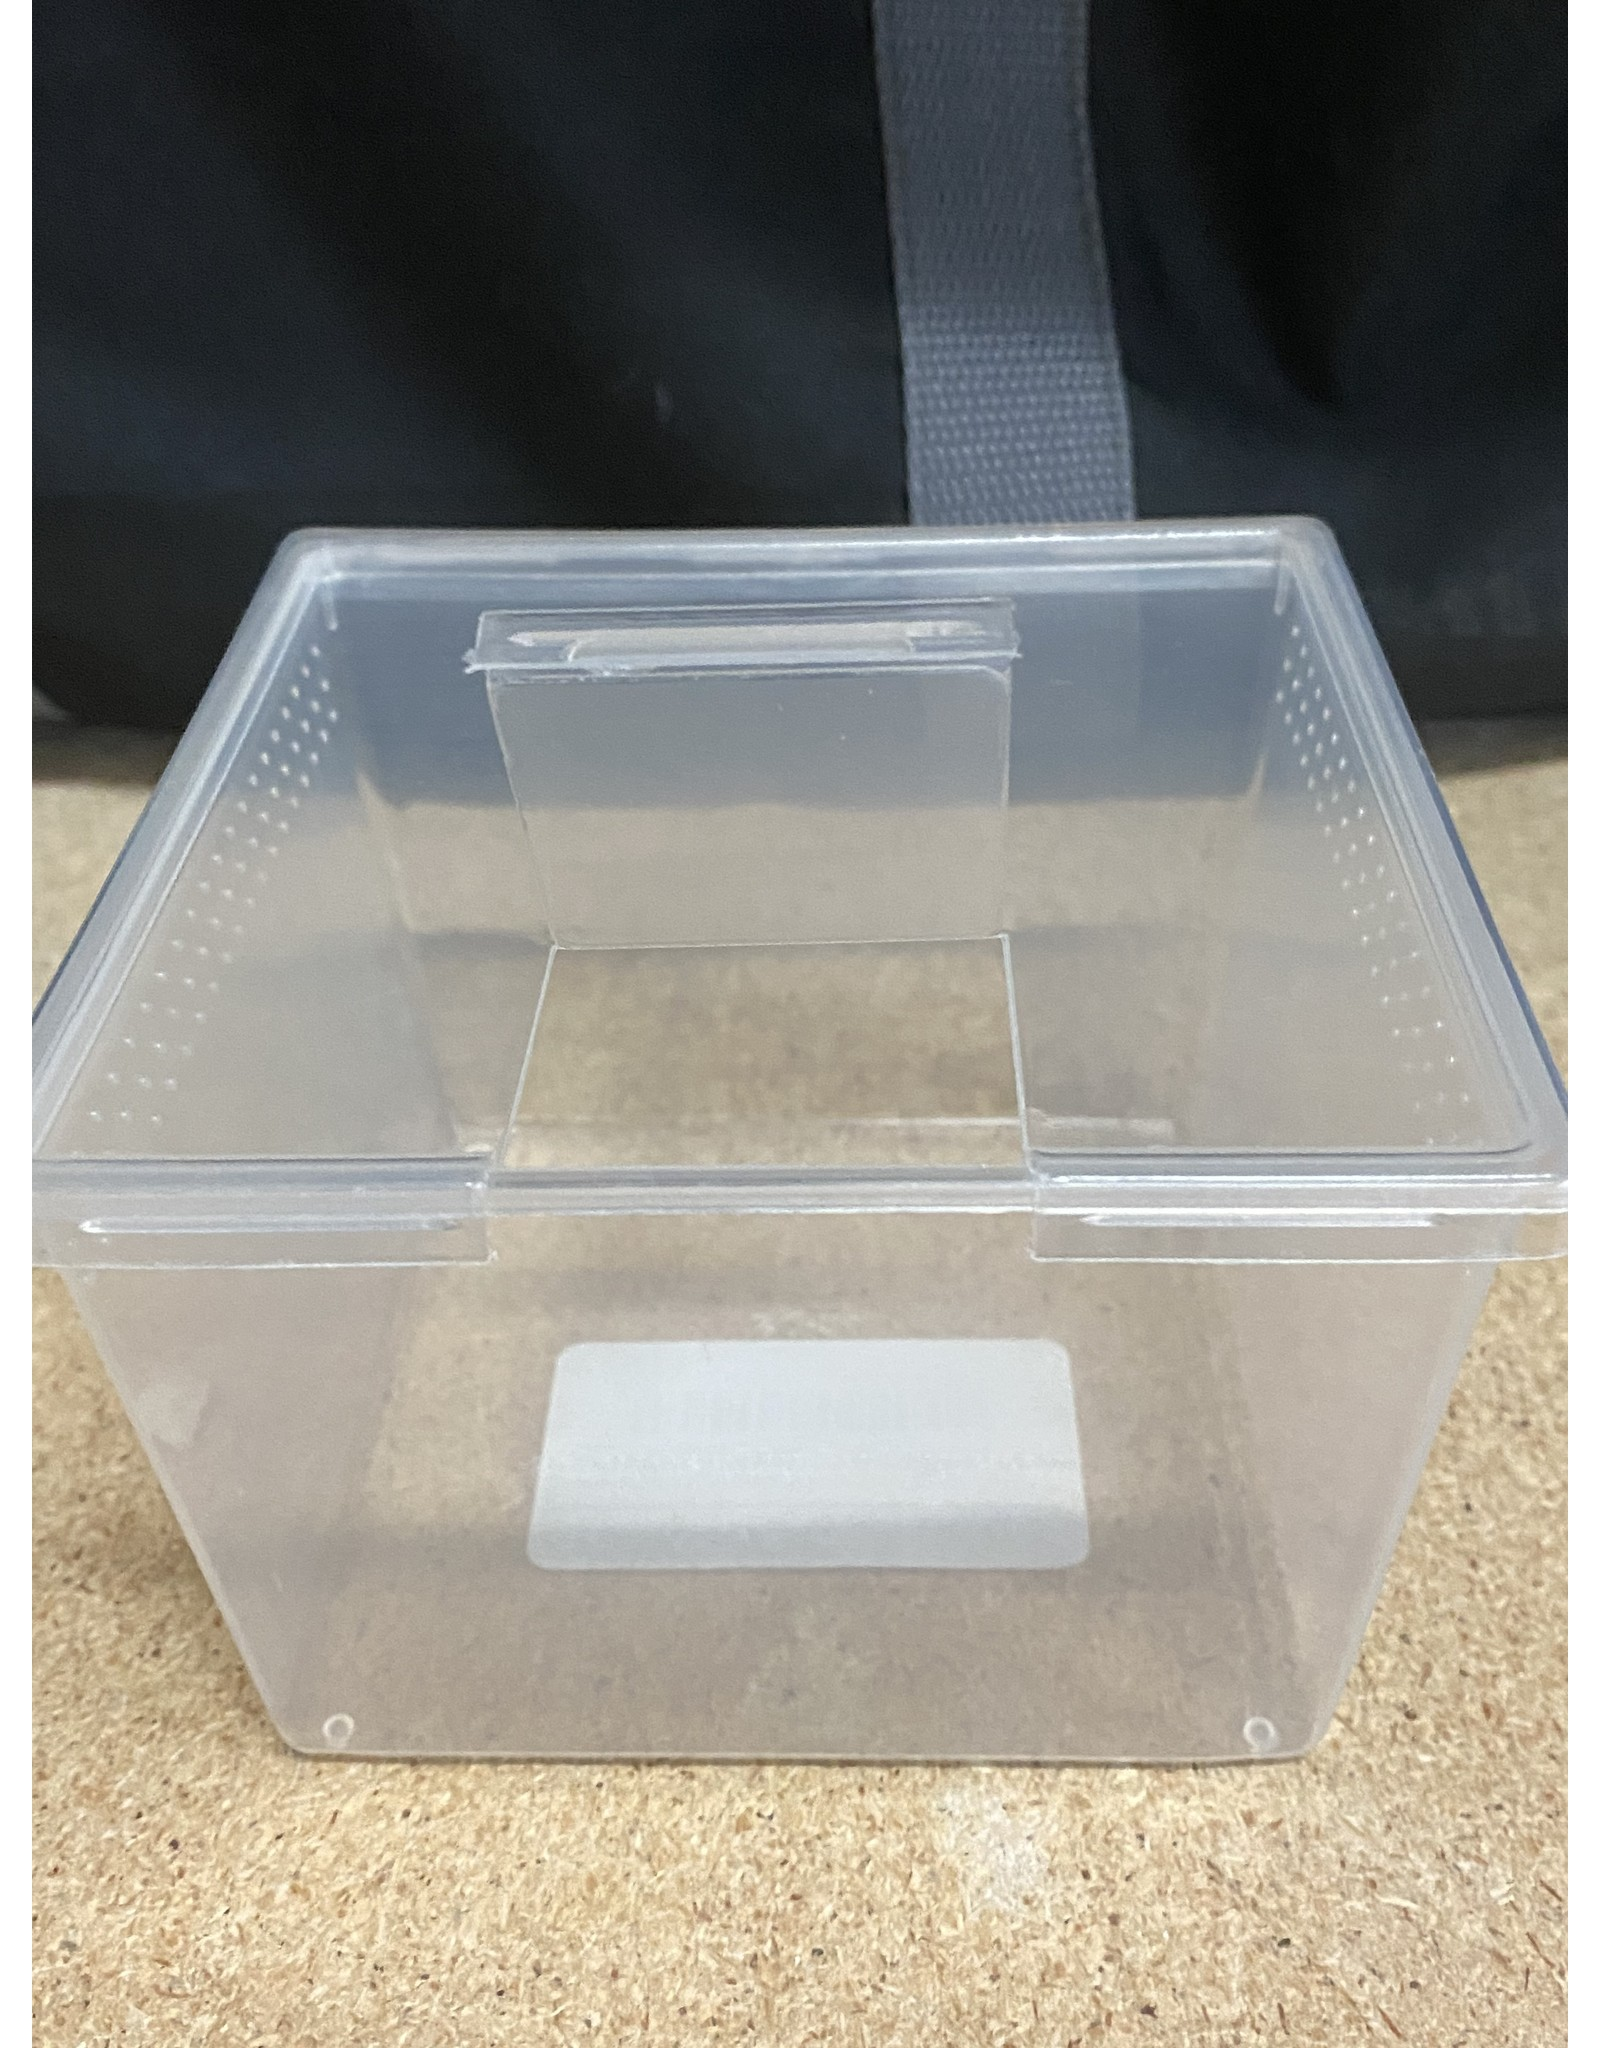 Pet-Tekk PET-TEKK Square Punched Deli Container with Lid